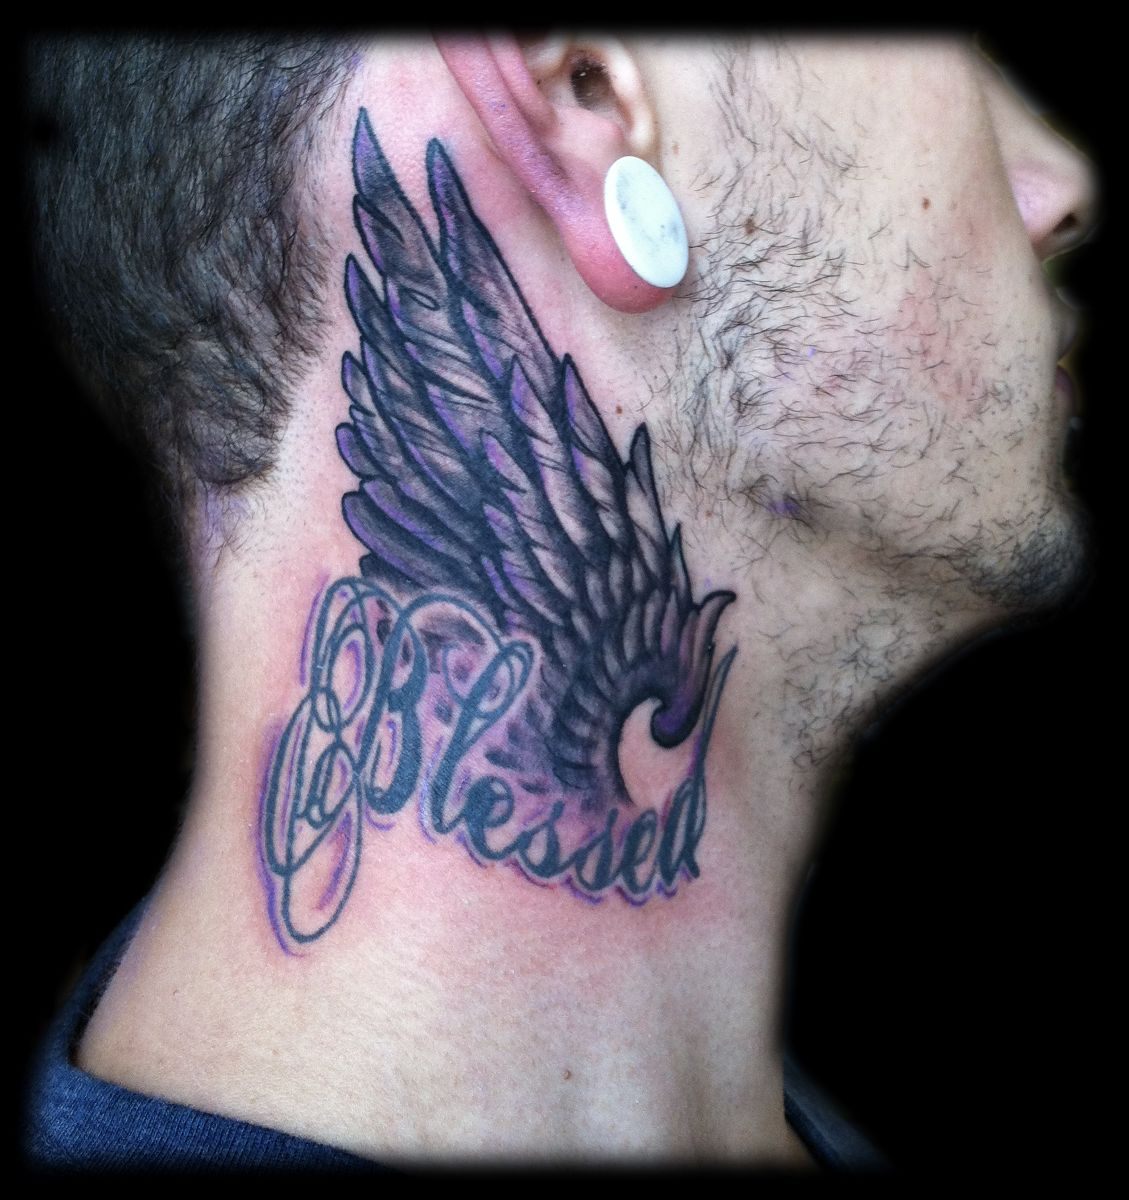 Tattoo For Men Neck: 30 Neck Tattoo Designs For Men